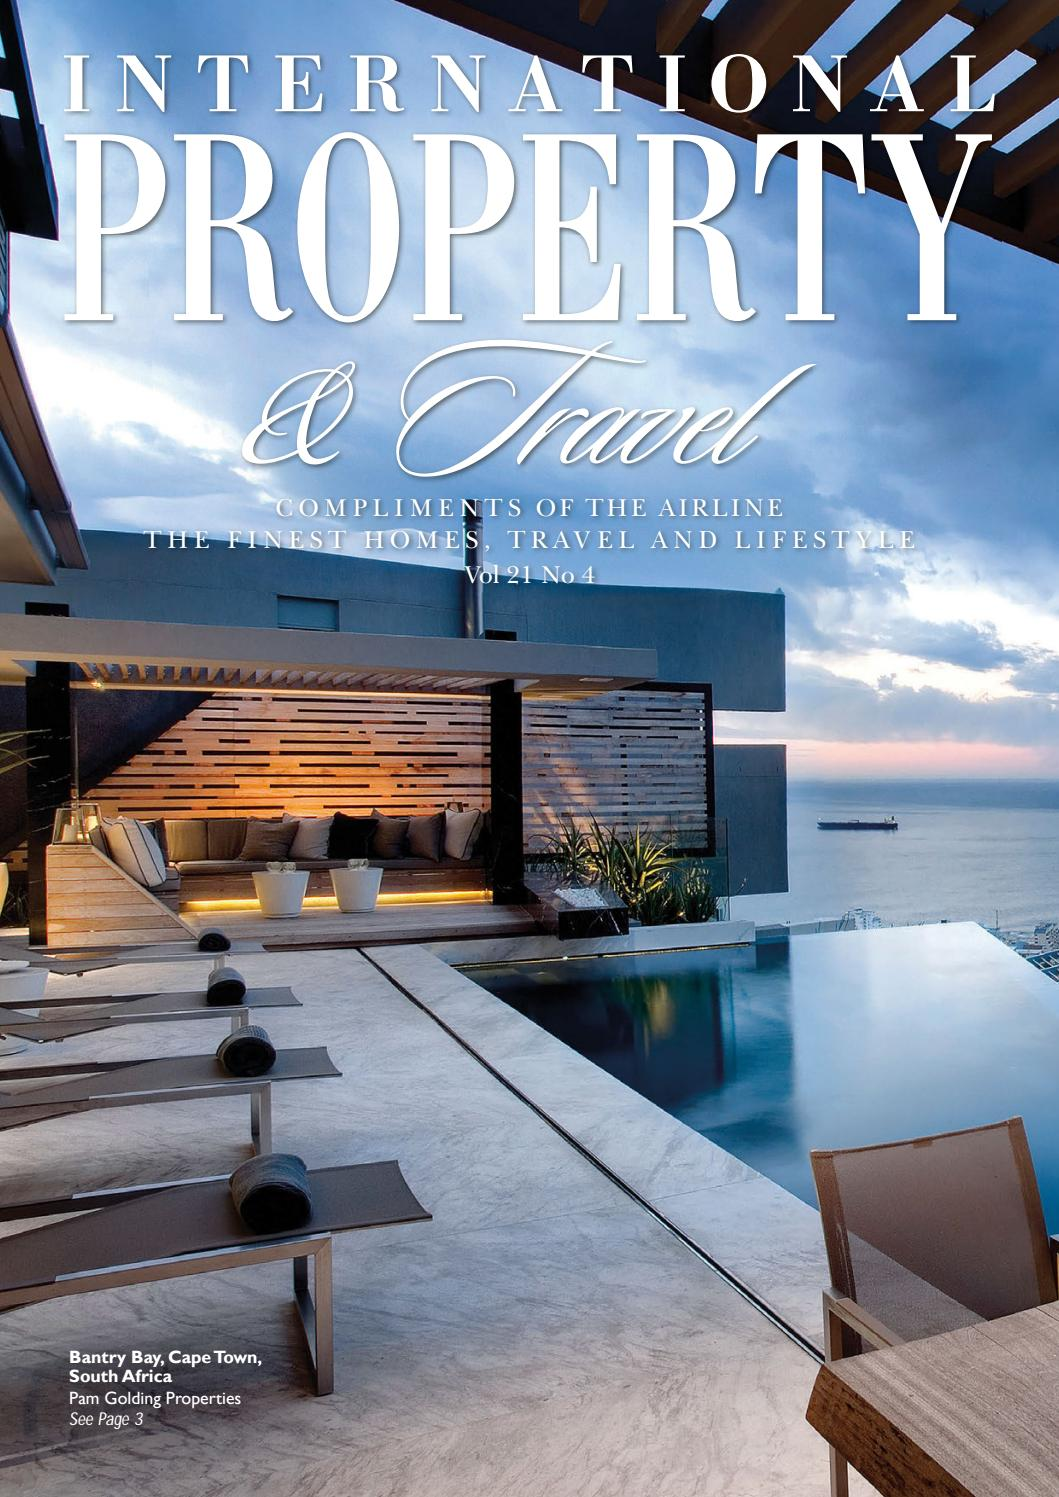 International Property & Travel Volume 21 Number 4 by International  Property Media - issuu